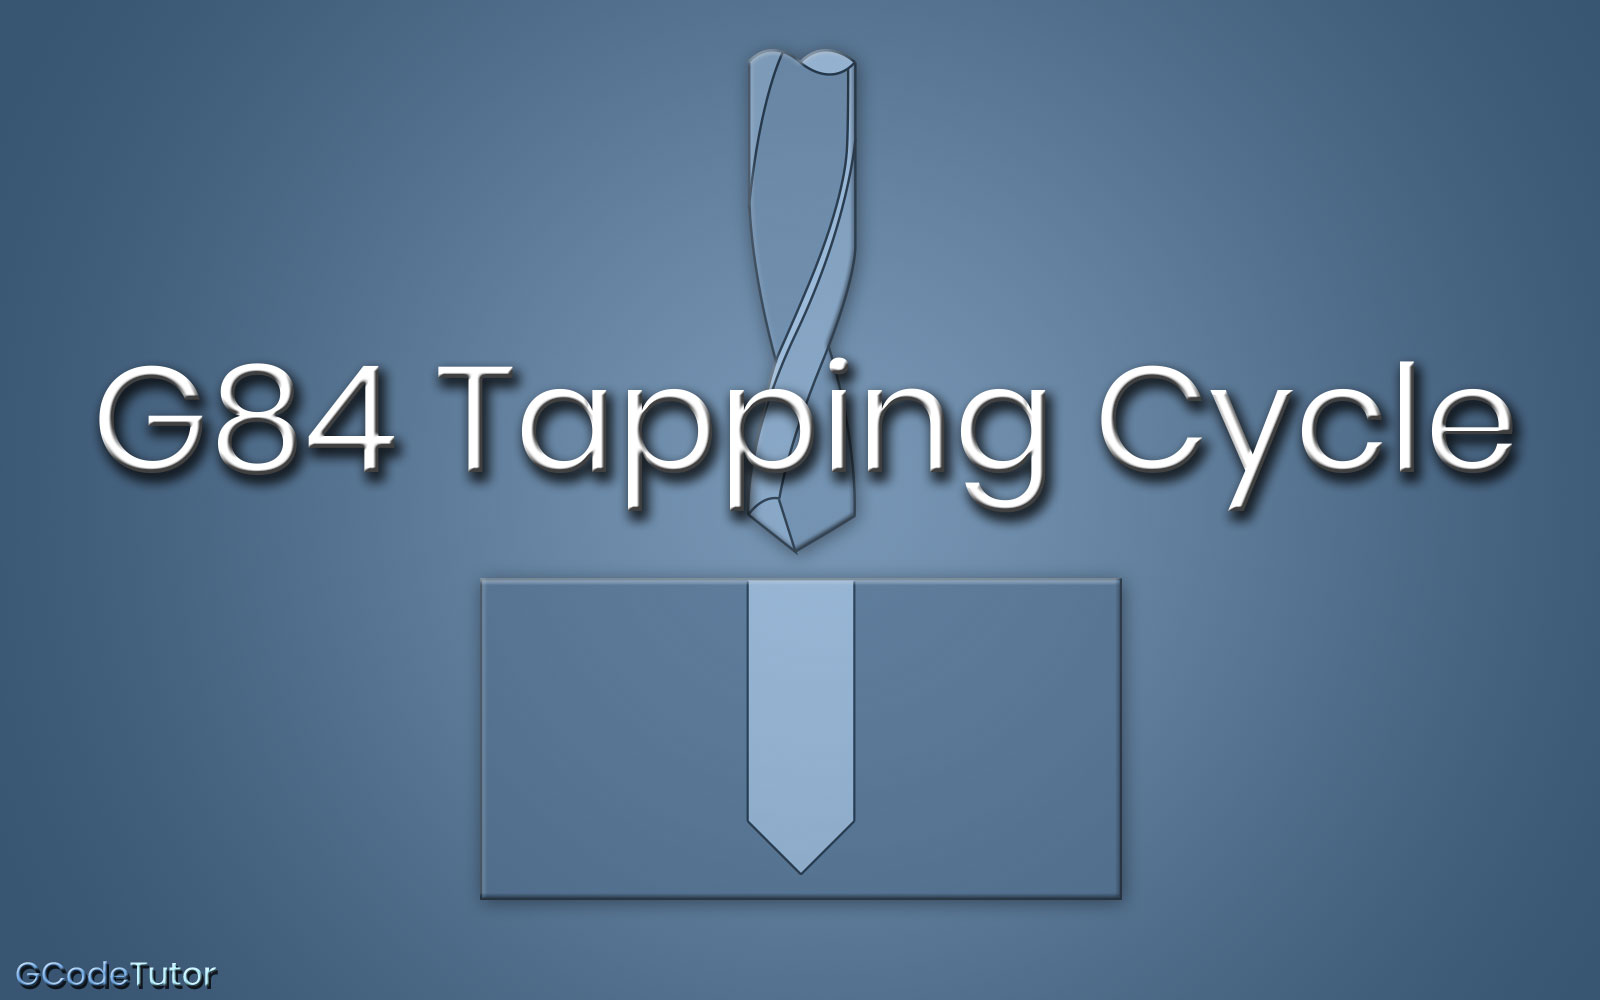 G84 Tapping Cycle